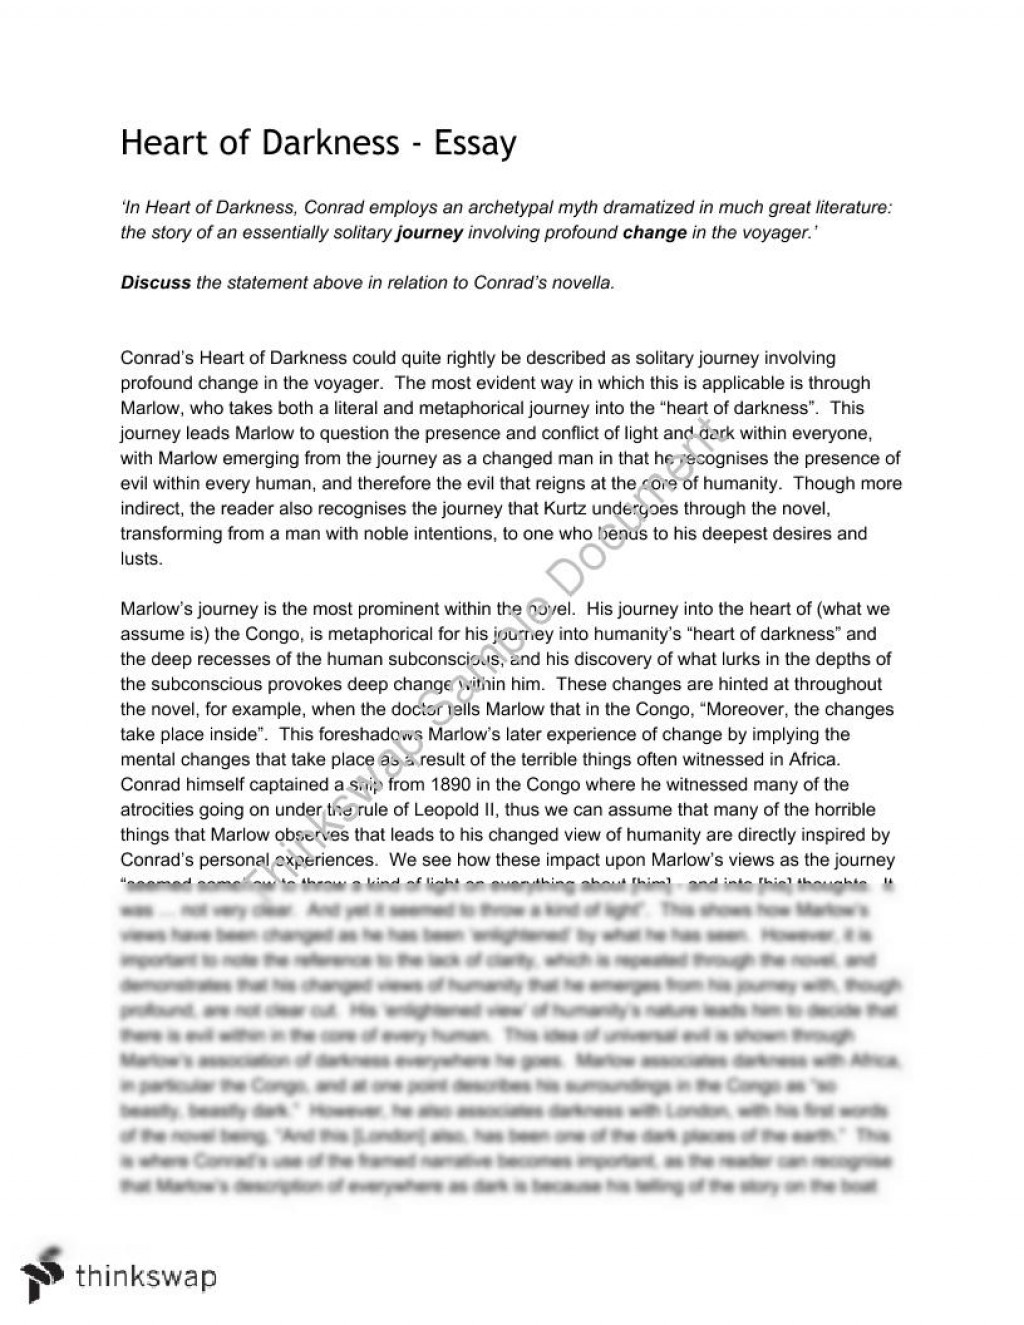 001 Essay Example Heart Of Darkness 60859 Heartofdarkness Fadded31 Wondrous Thesis Statement Topics Critical Essays Pdf Large